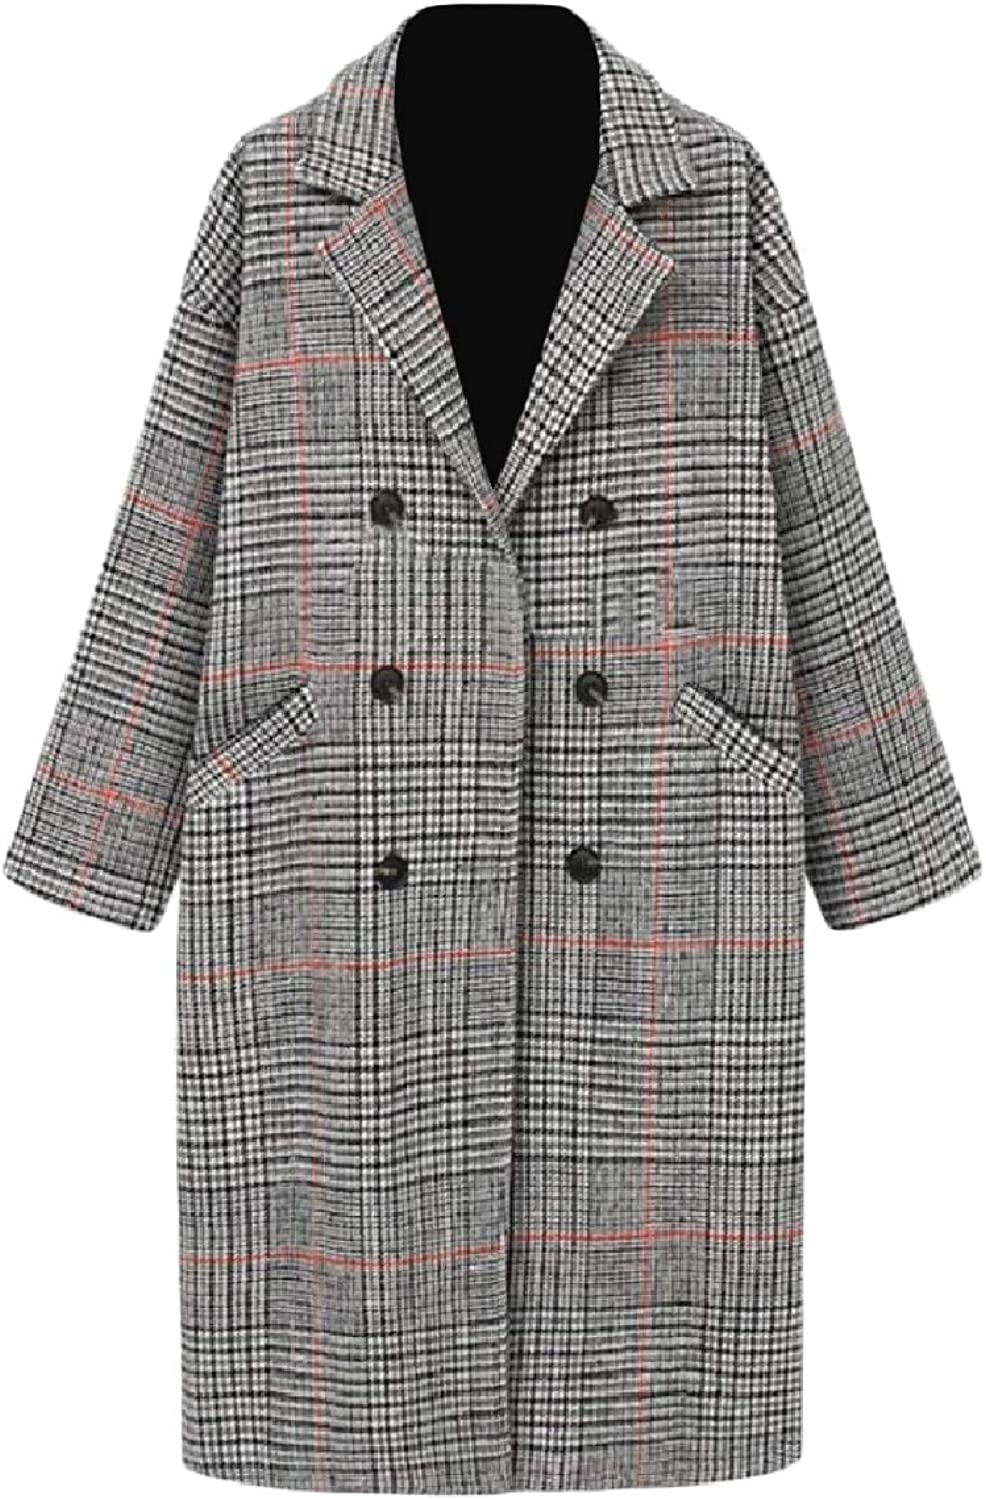 Winme Womens Casual Thick Lapel Collar Plaid Woolen Trench Coat Outwear